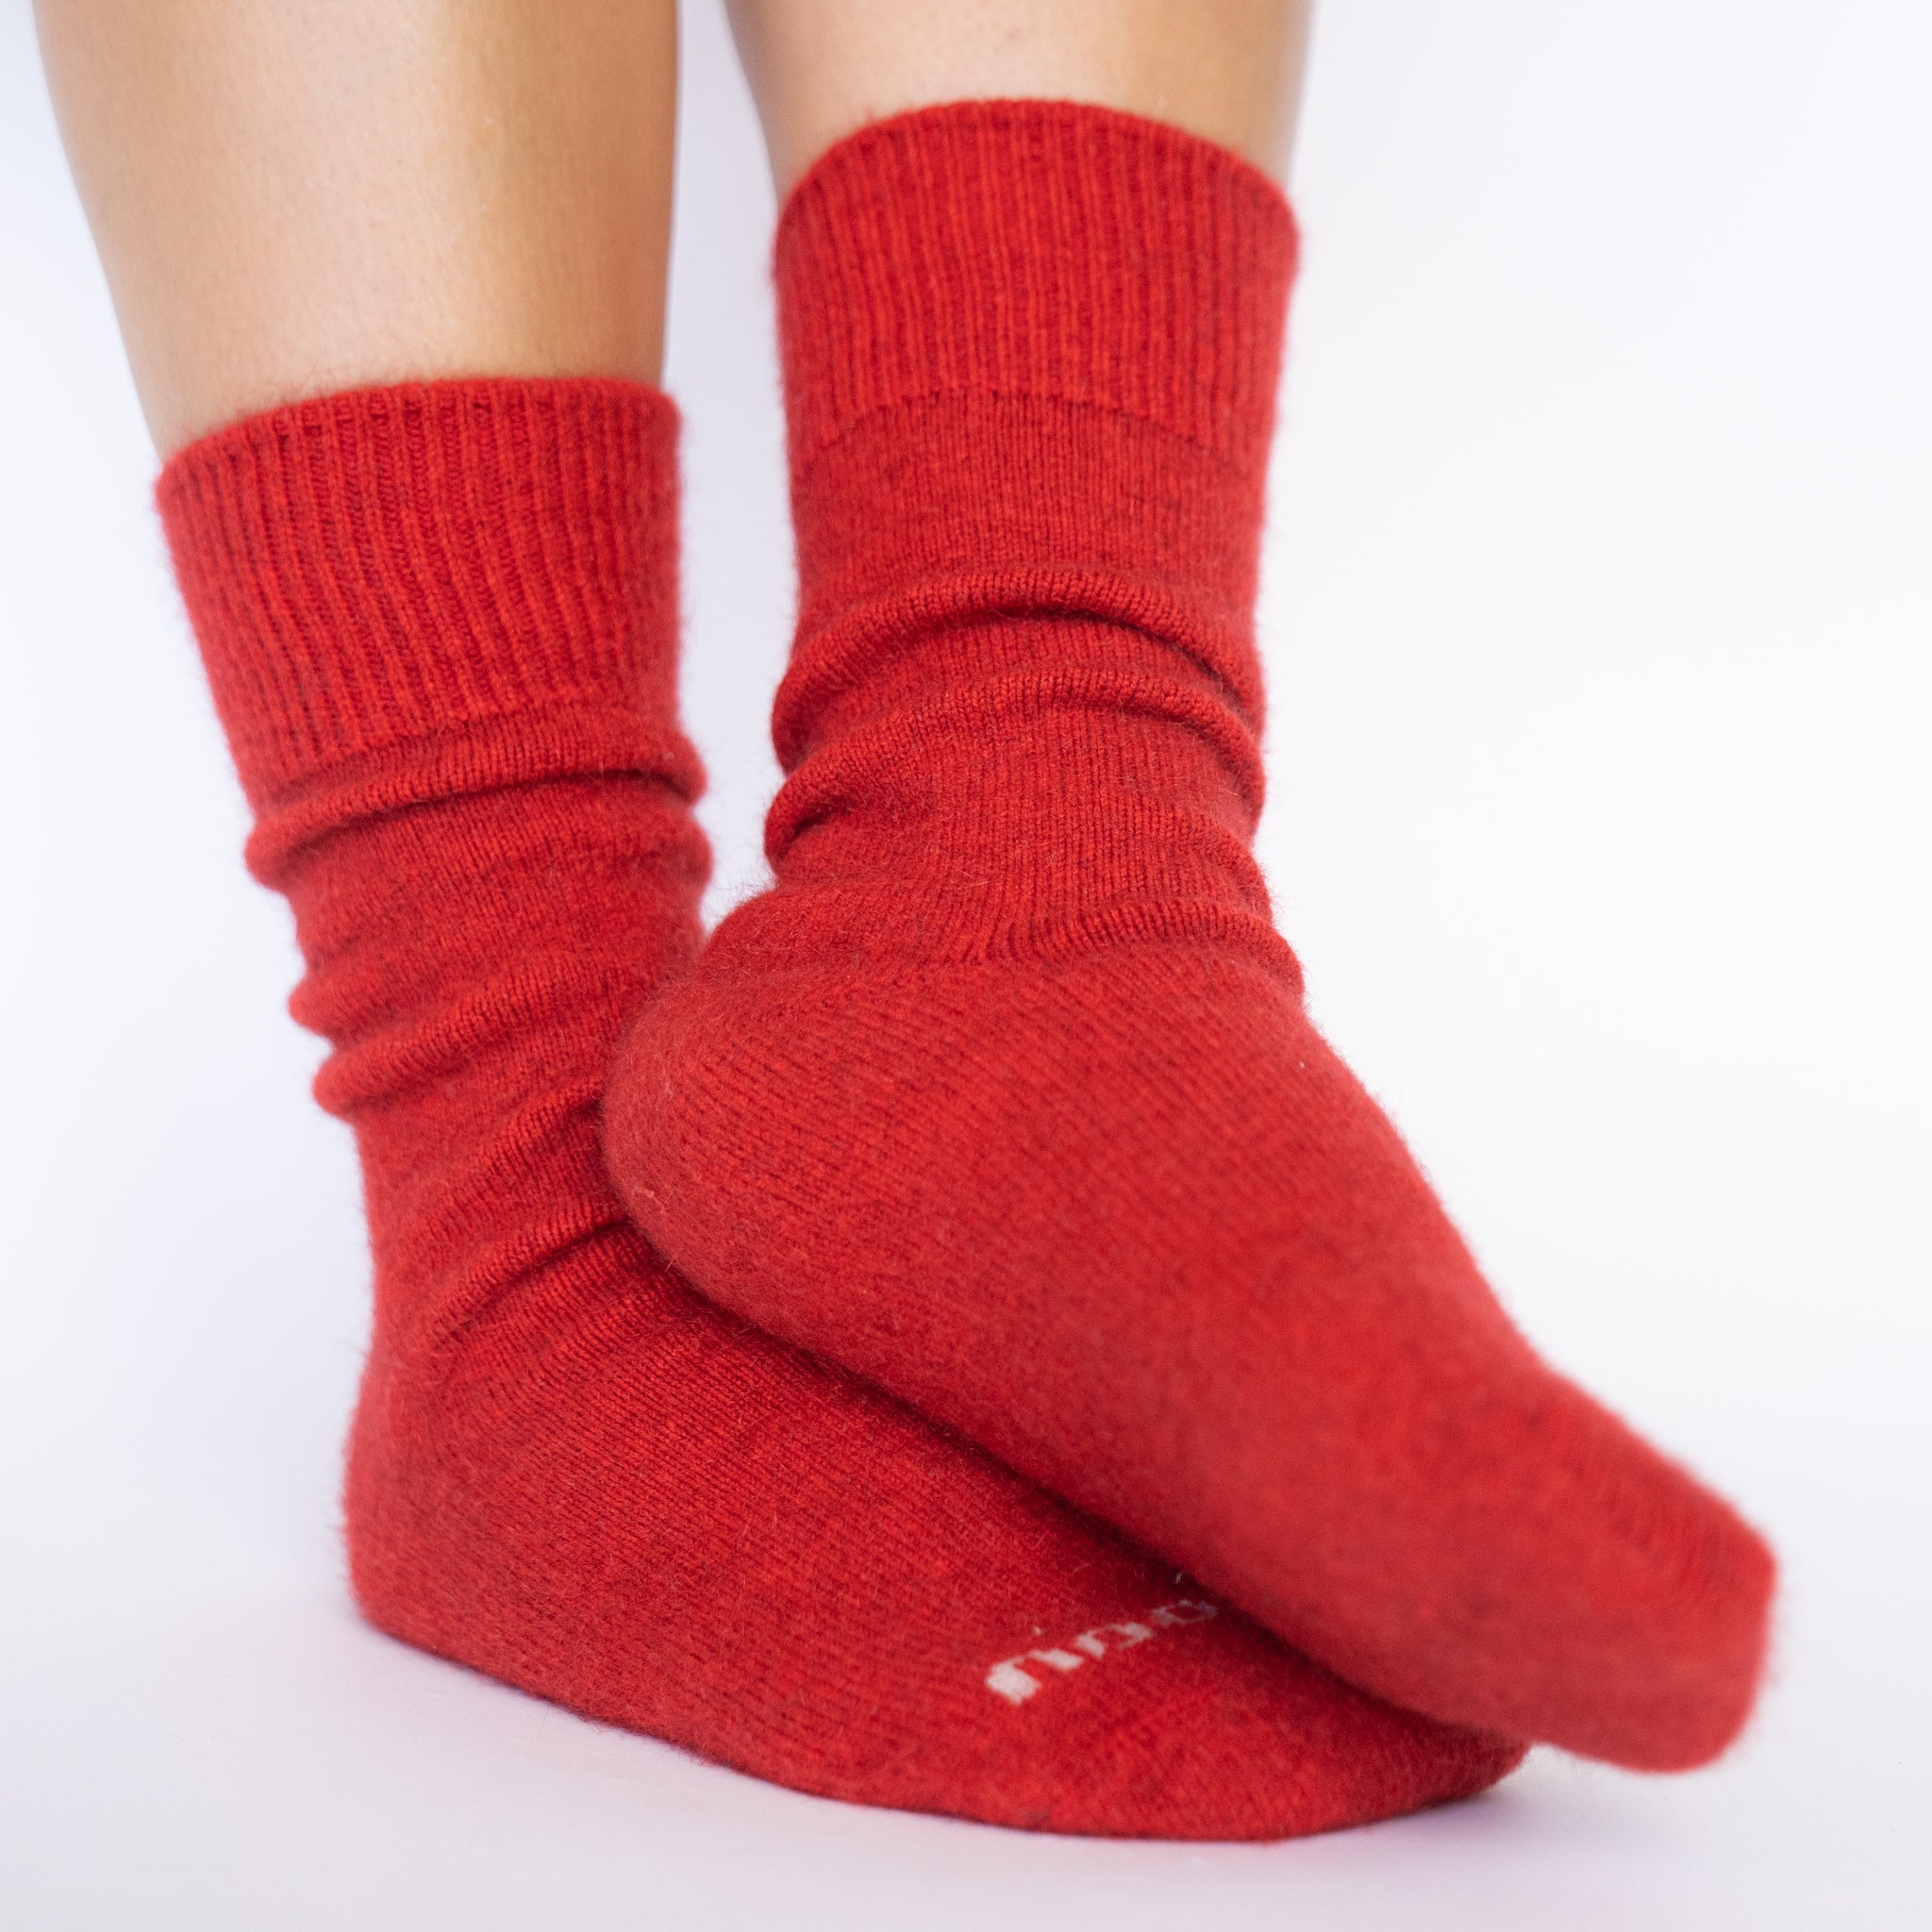 PIHA Socks, Scarlet Women